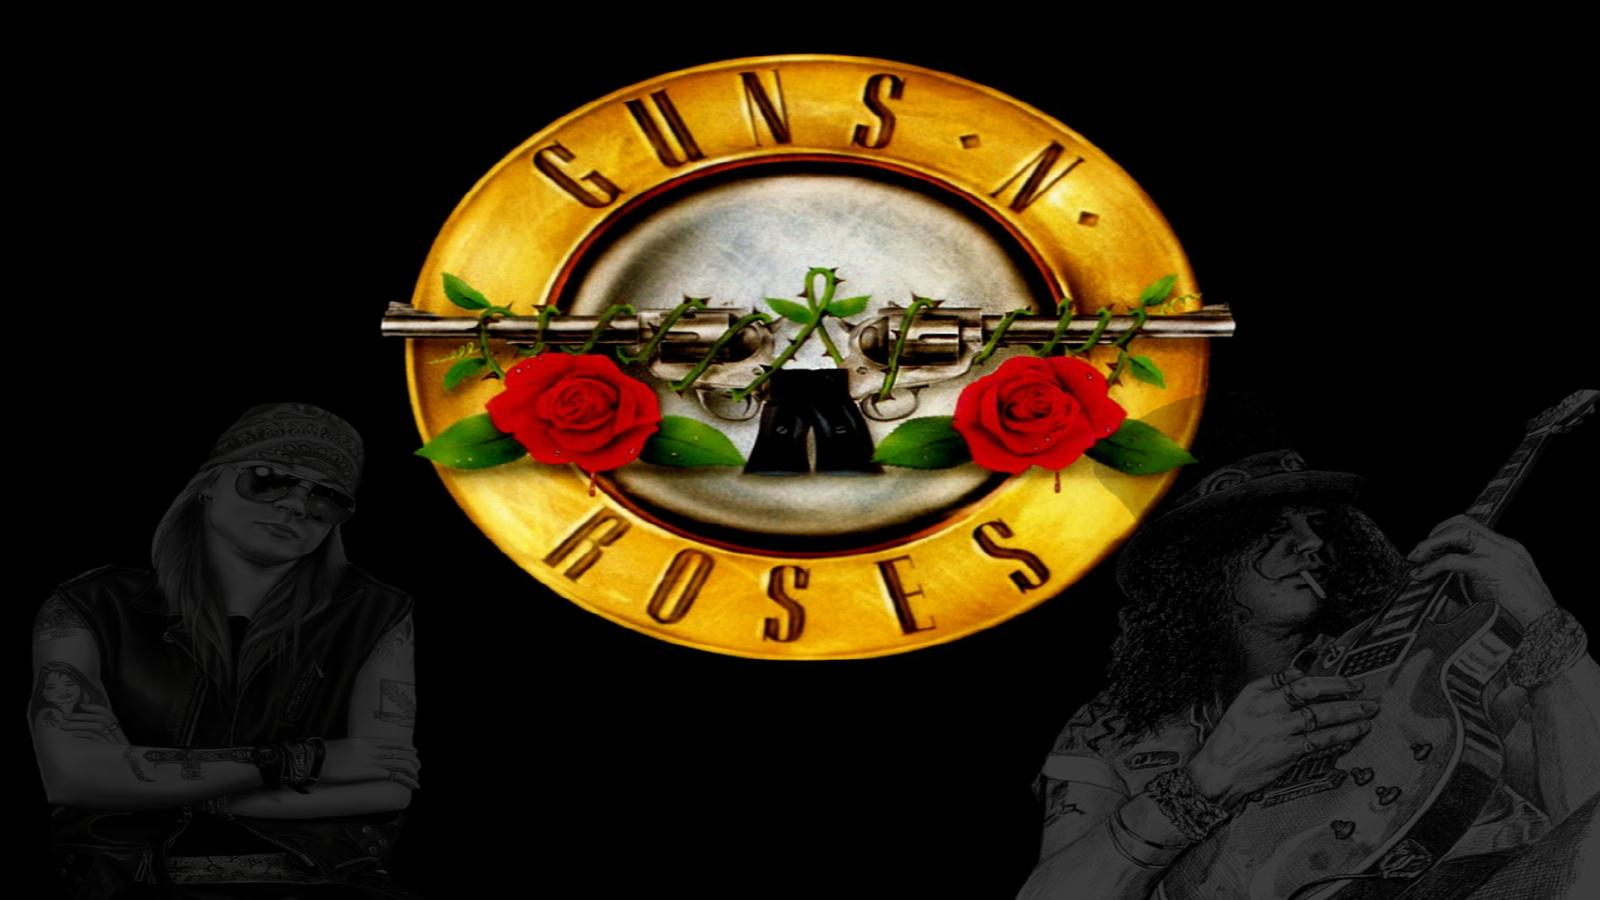 Guns n roses wallpaper hd download - Wallpaper guns and roses ...